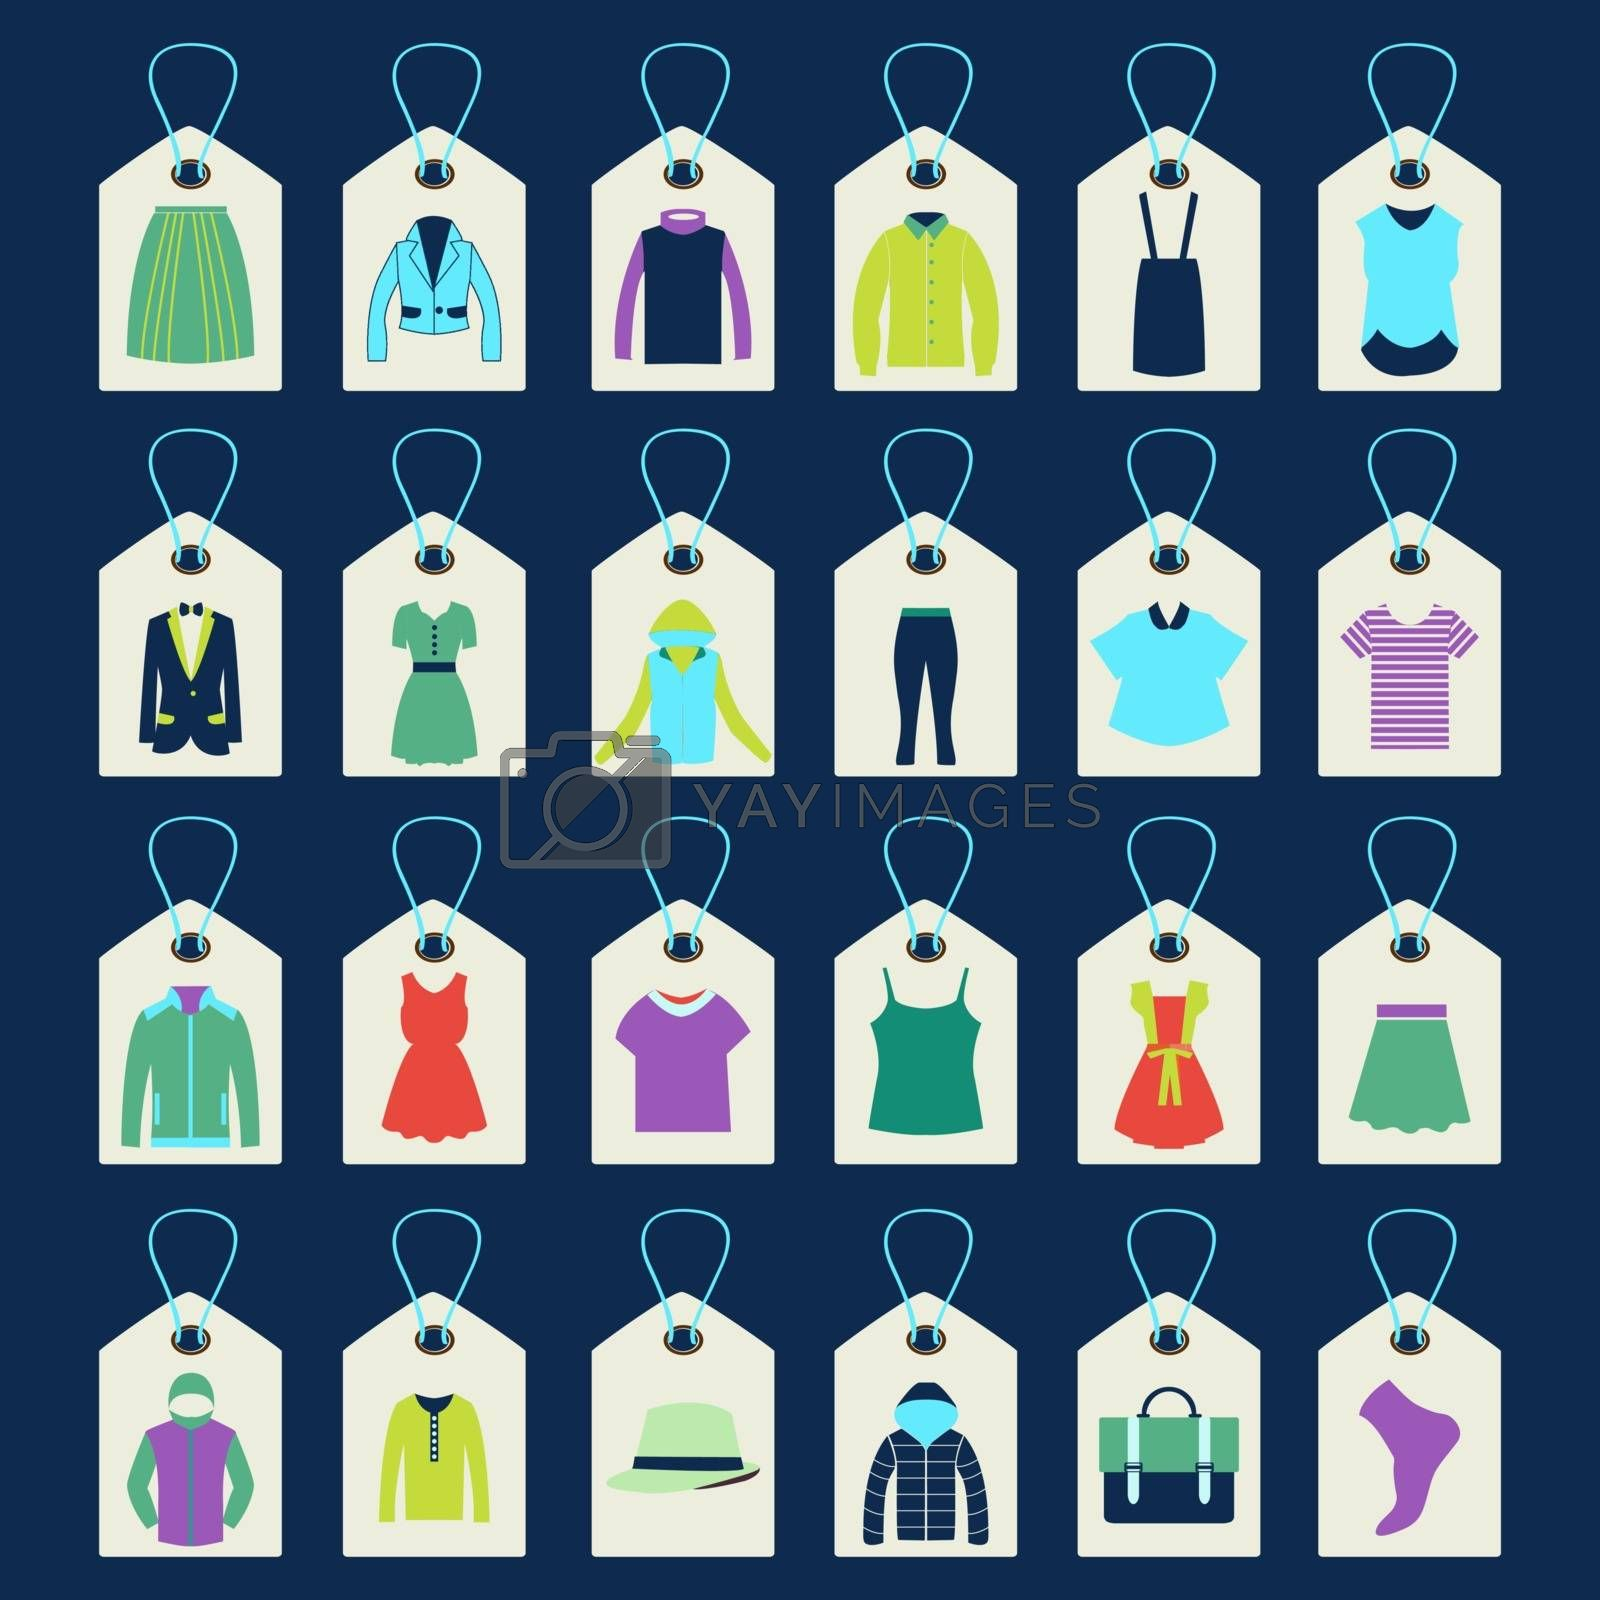 Shopping related icons made in tag shape  collection of women and men  fashion Clothing